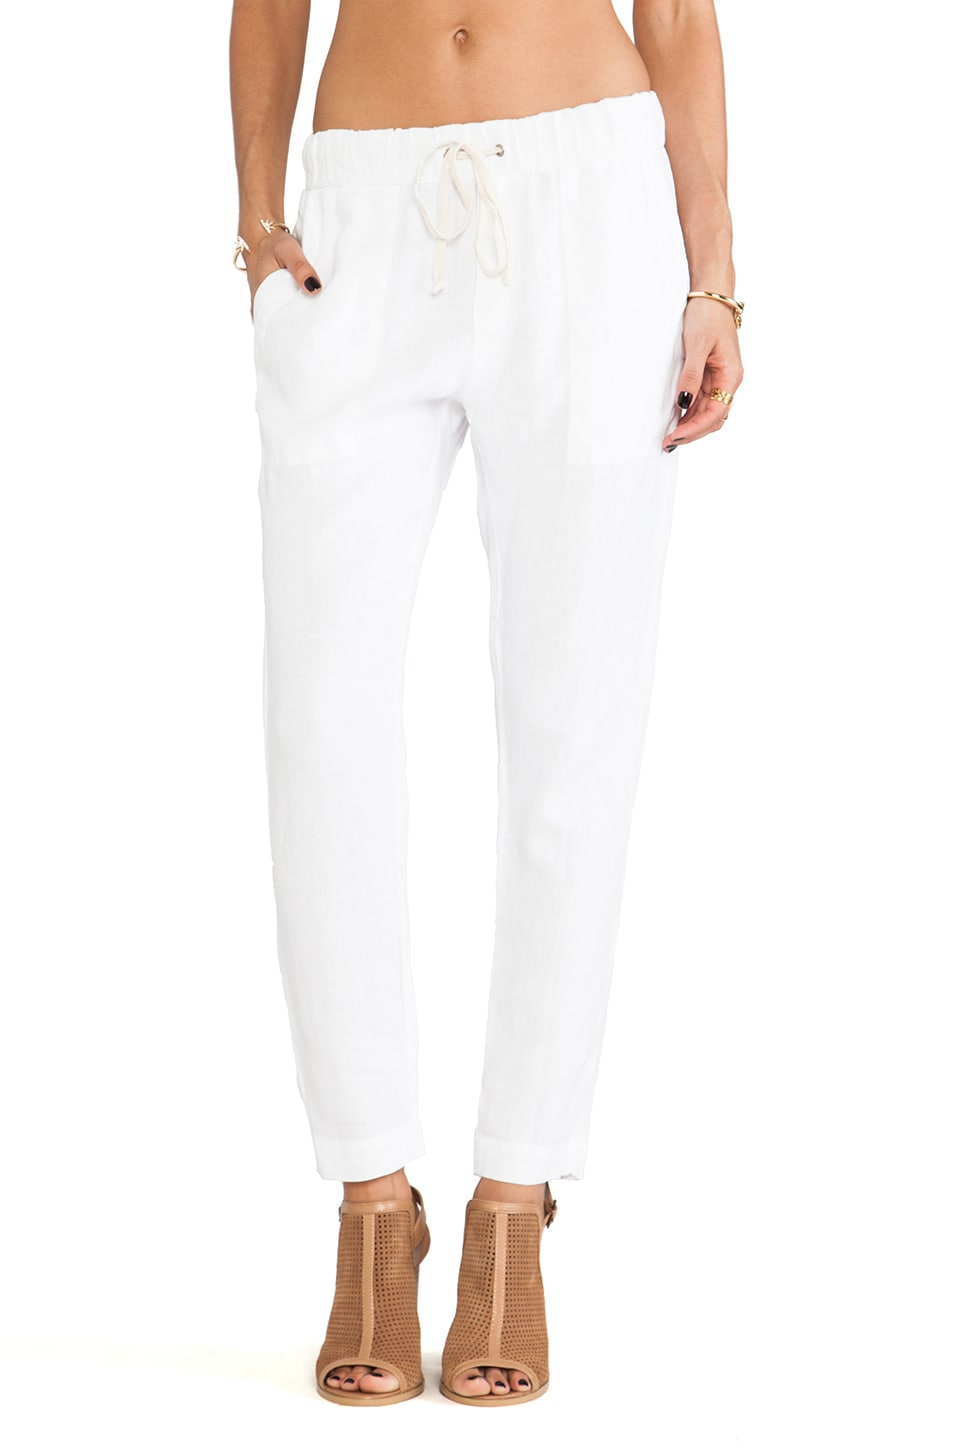 Enza Costa Linen Pant in White